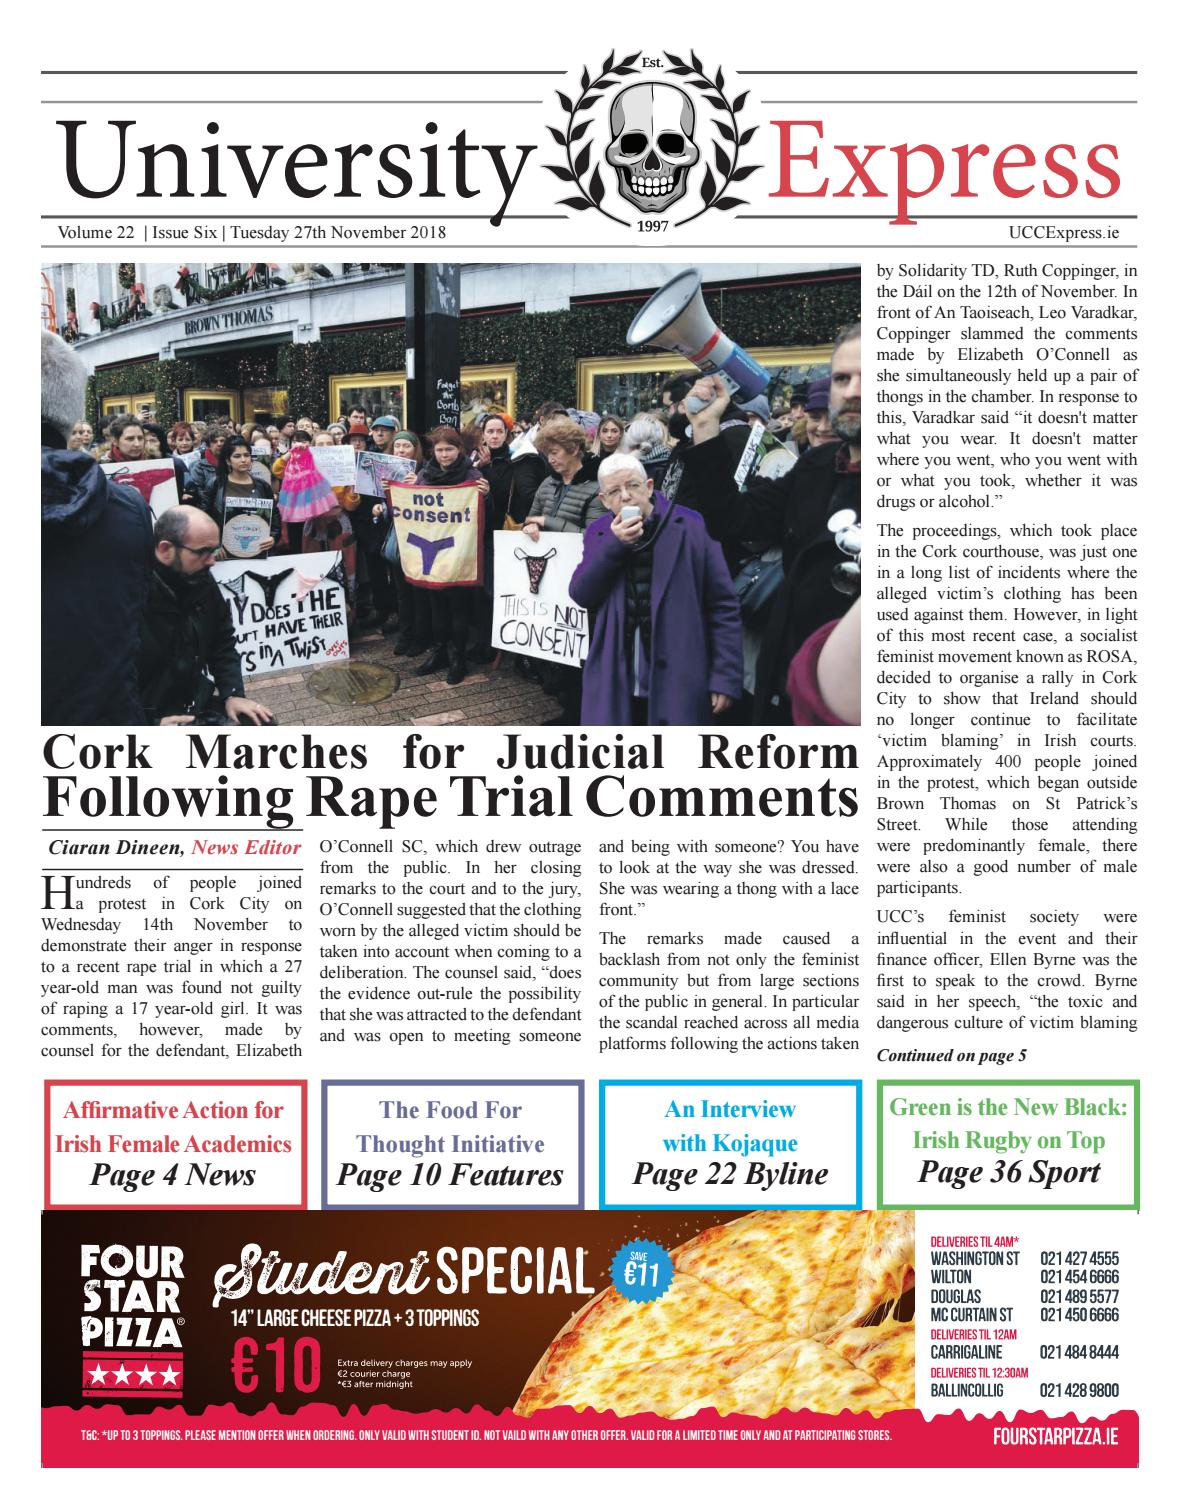 The University Express Vol  22: Issue 6 by University Express - issuu